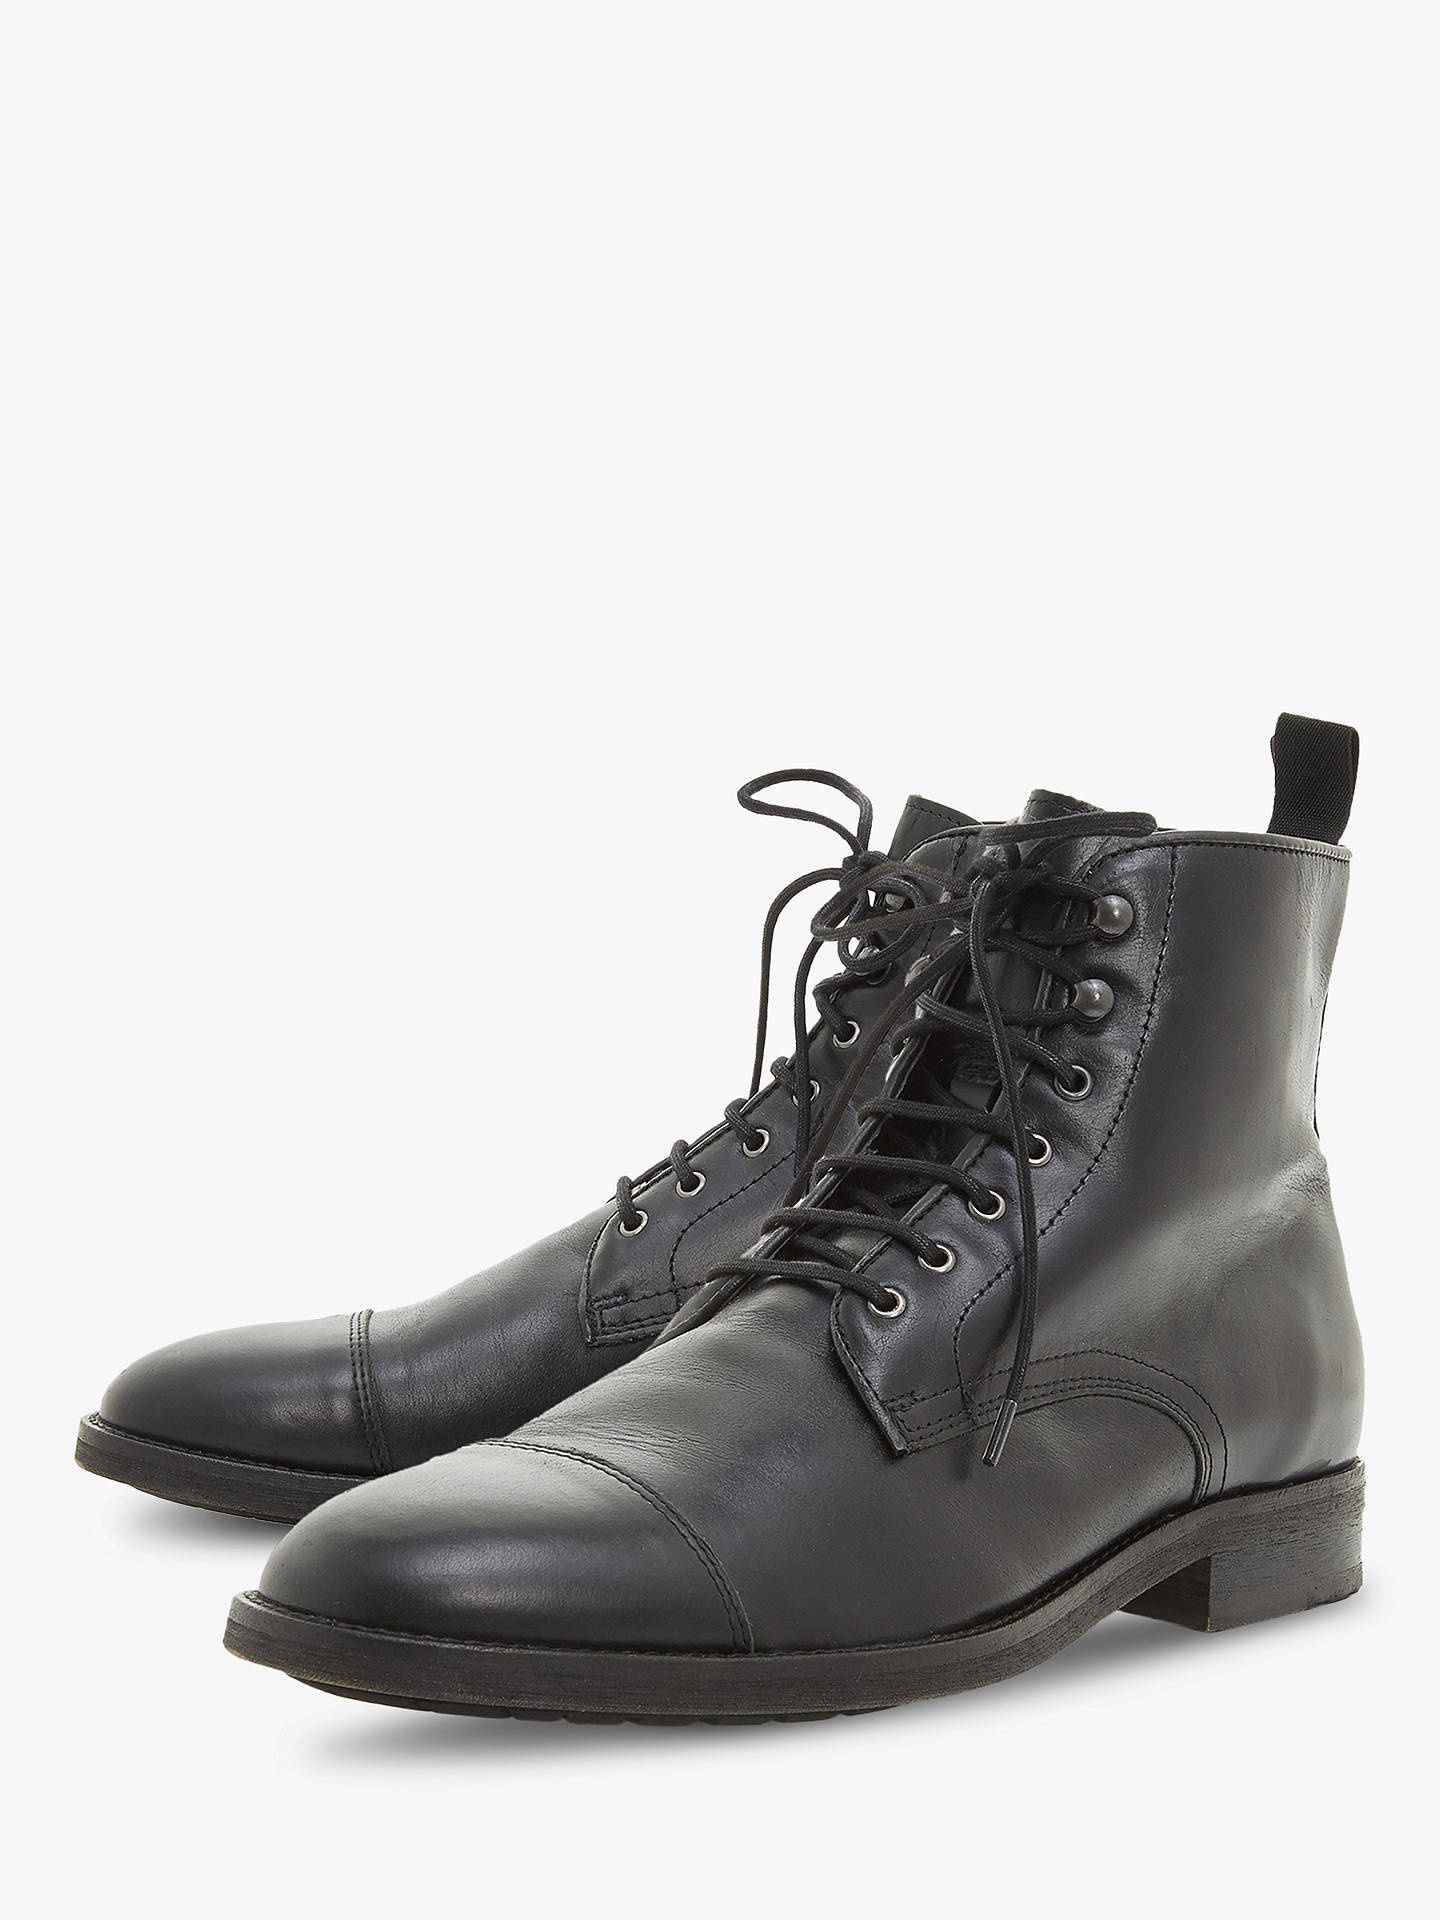 BuyBertie Christchurch Worker Boots, Black, 8 Online at johnlewis.com